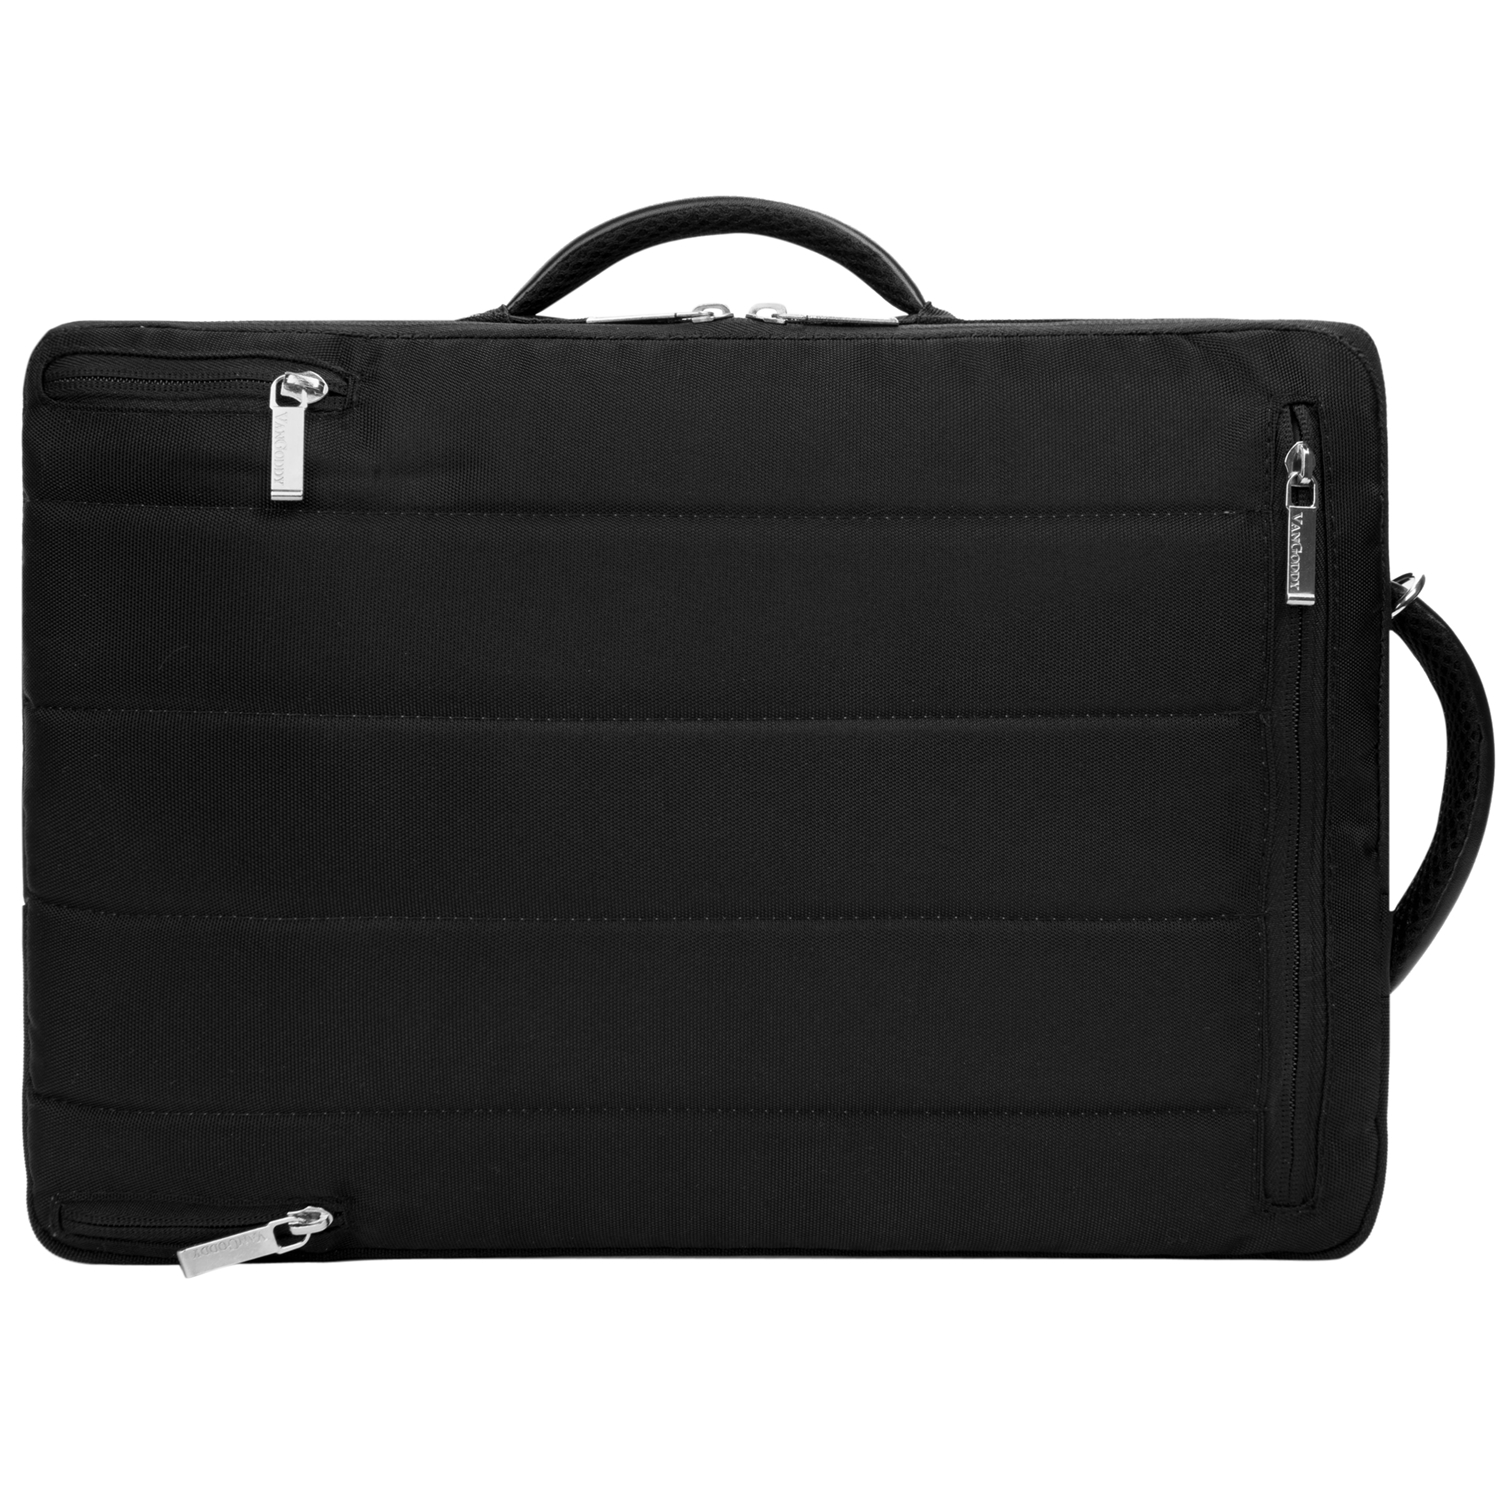 Slate Laptop Bag 15.6